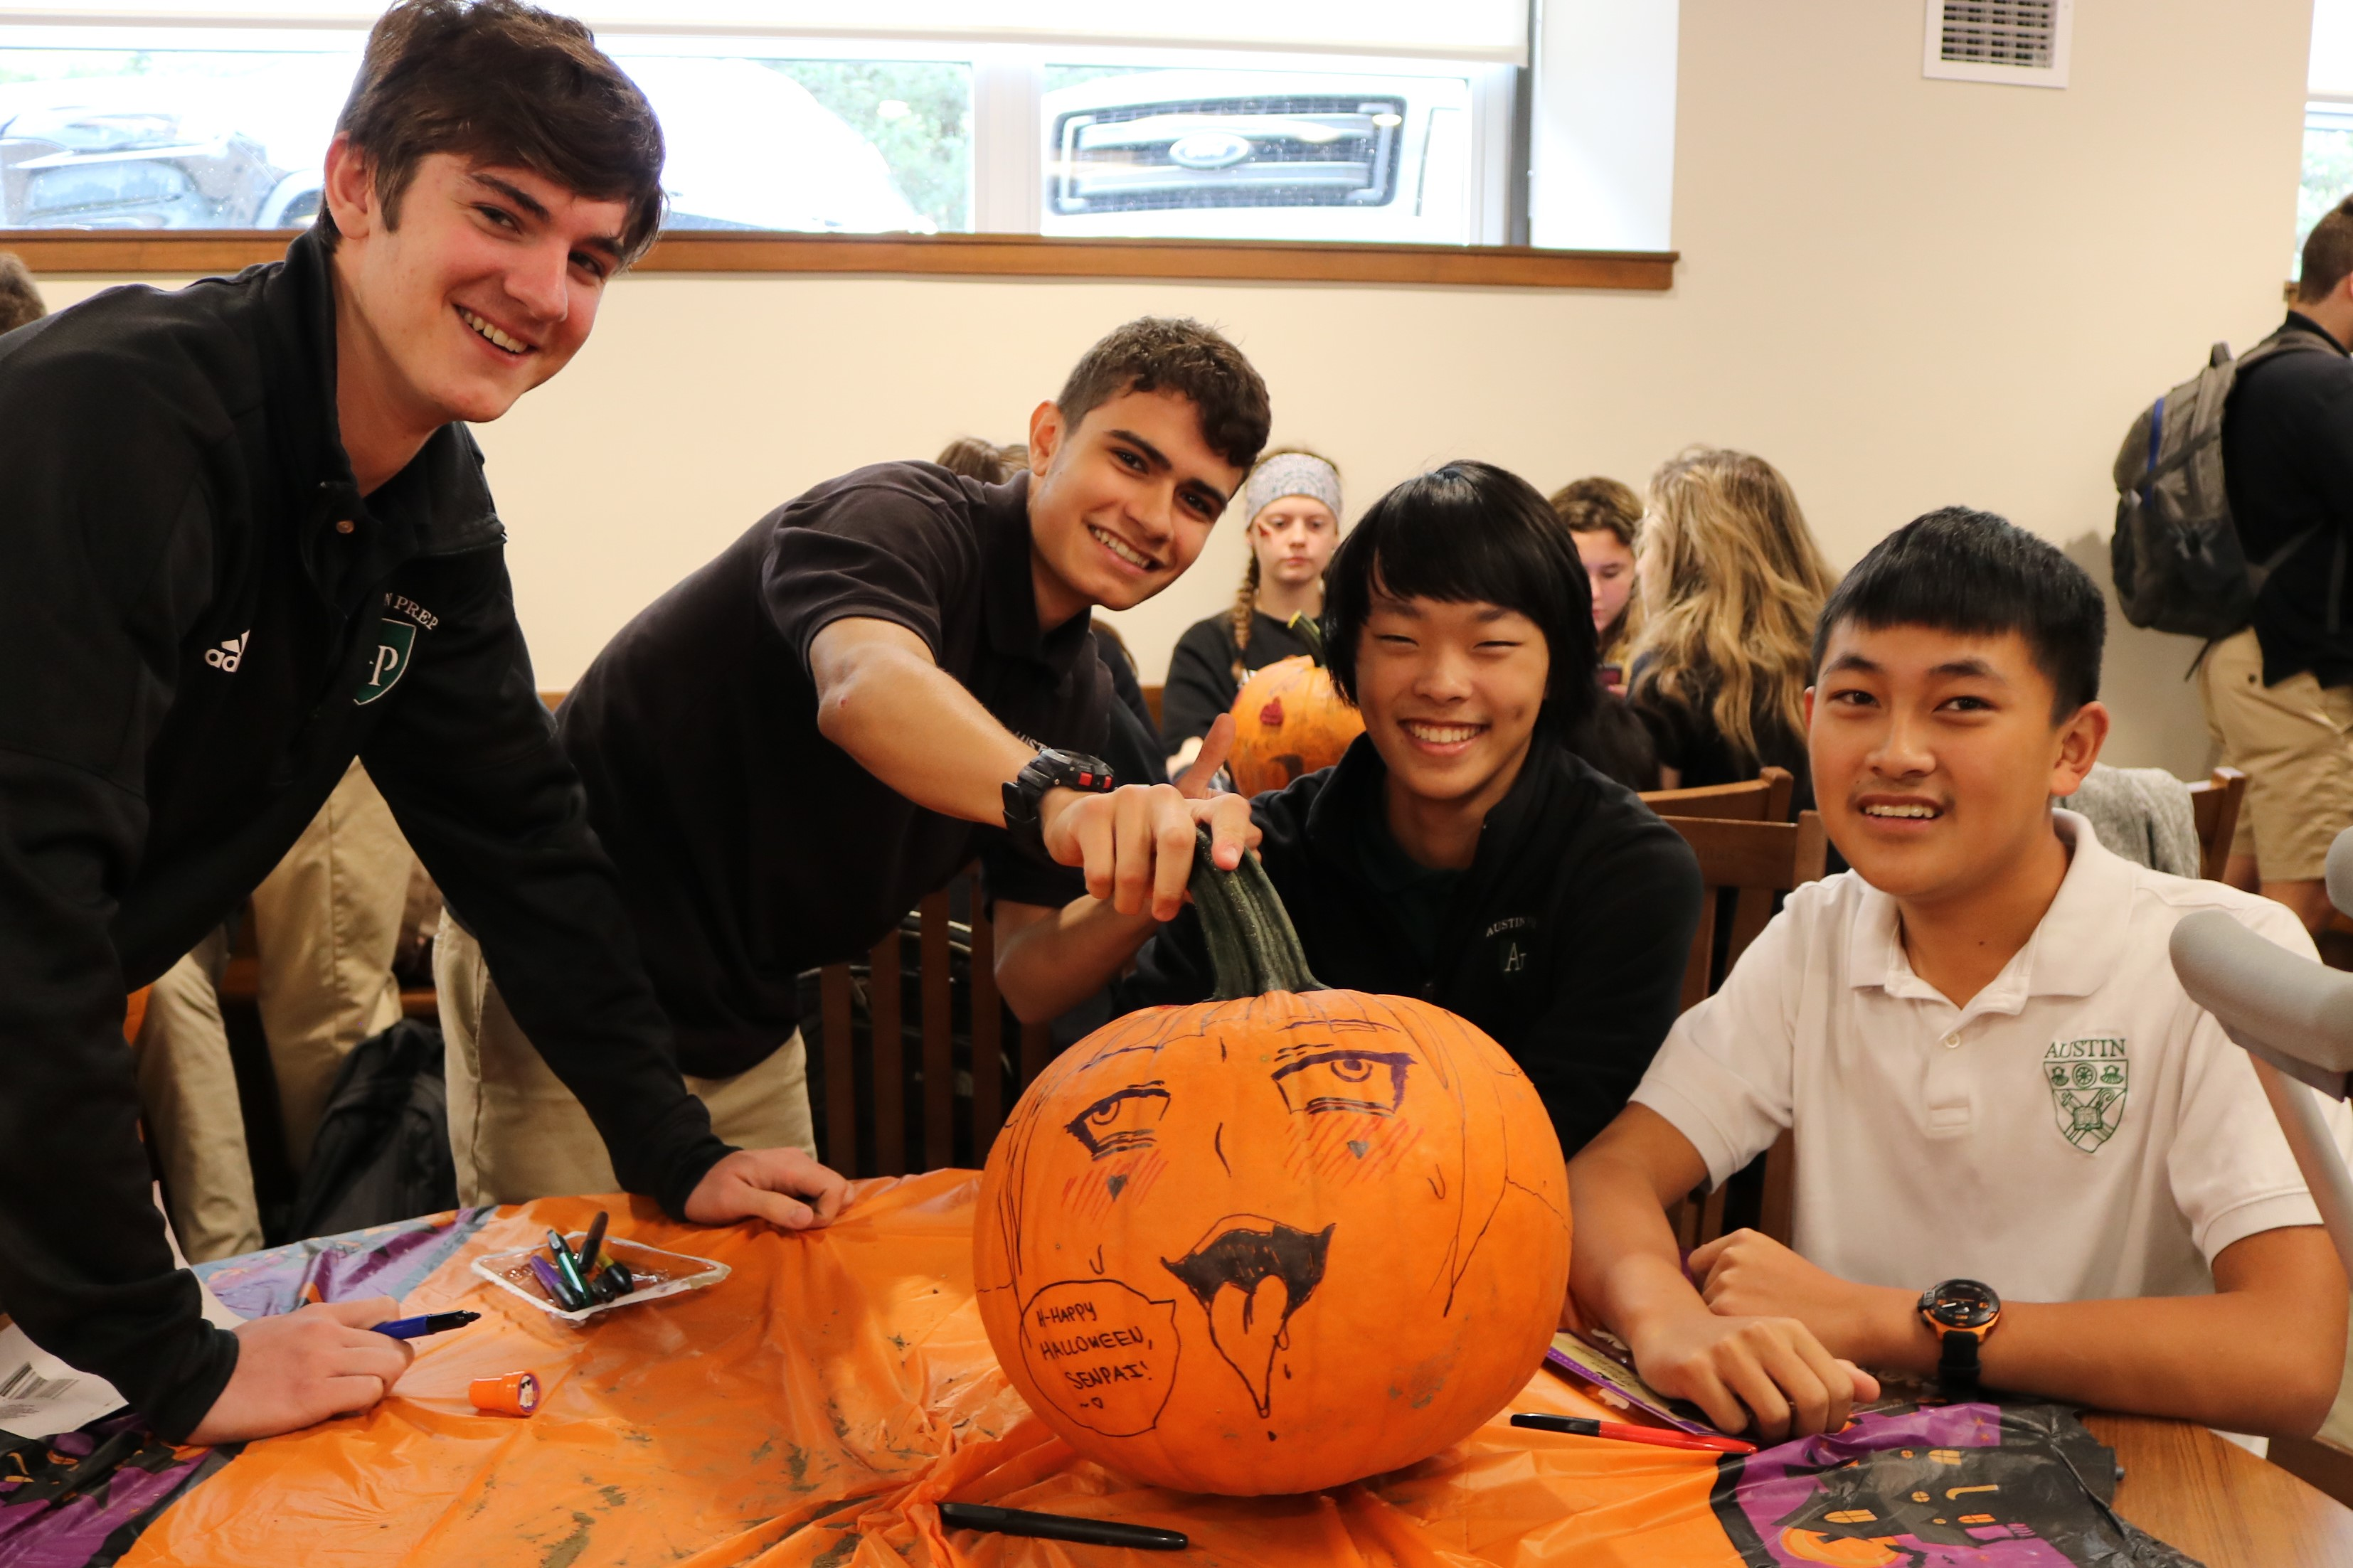 Students drawing on a pumpkin